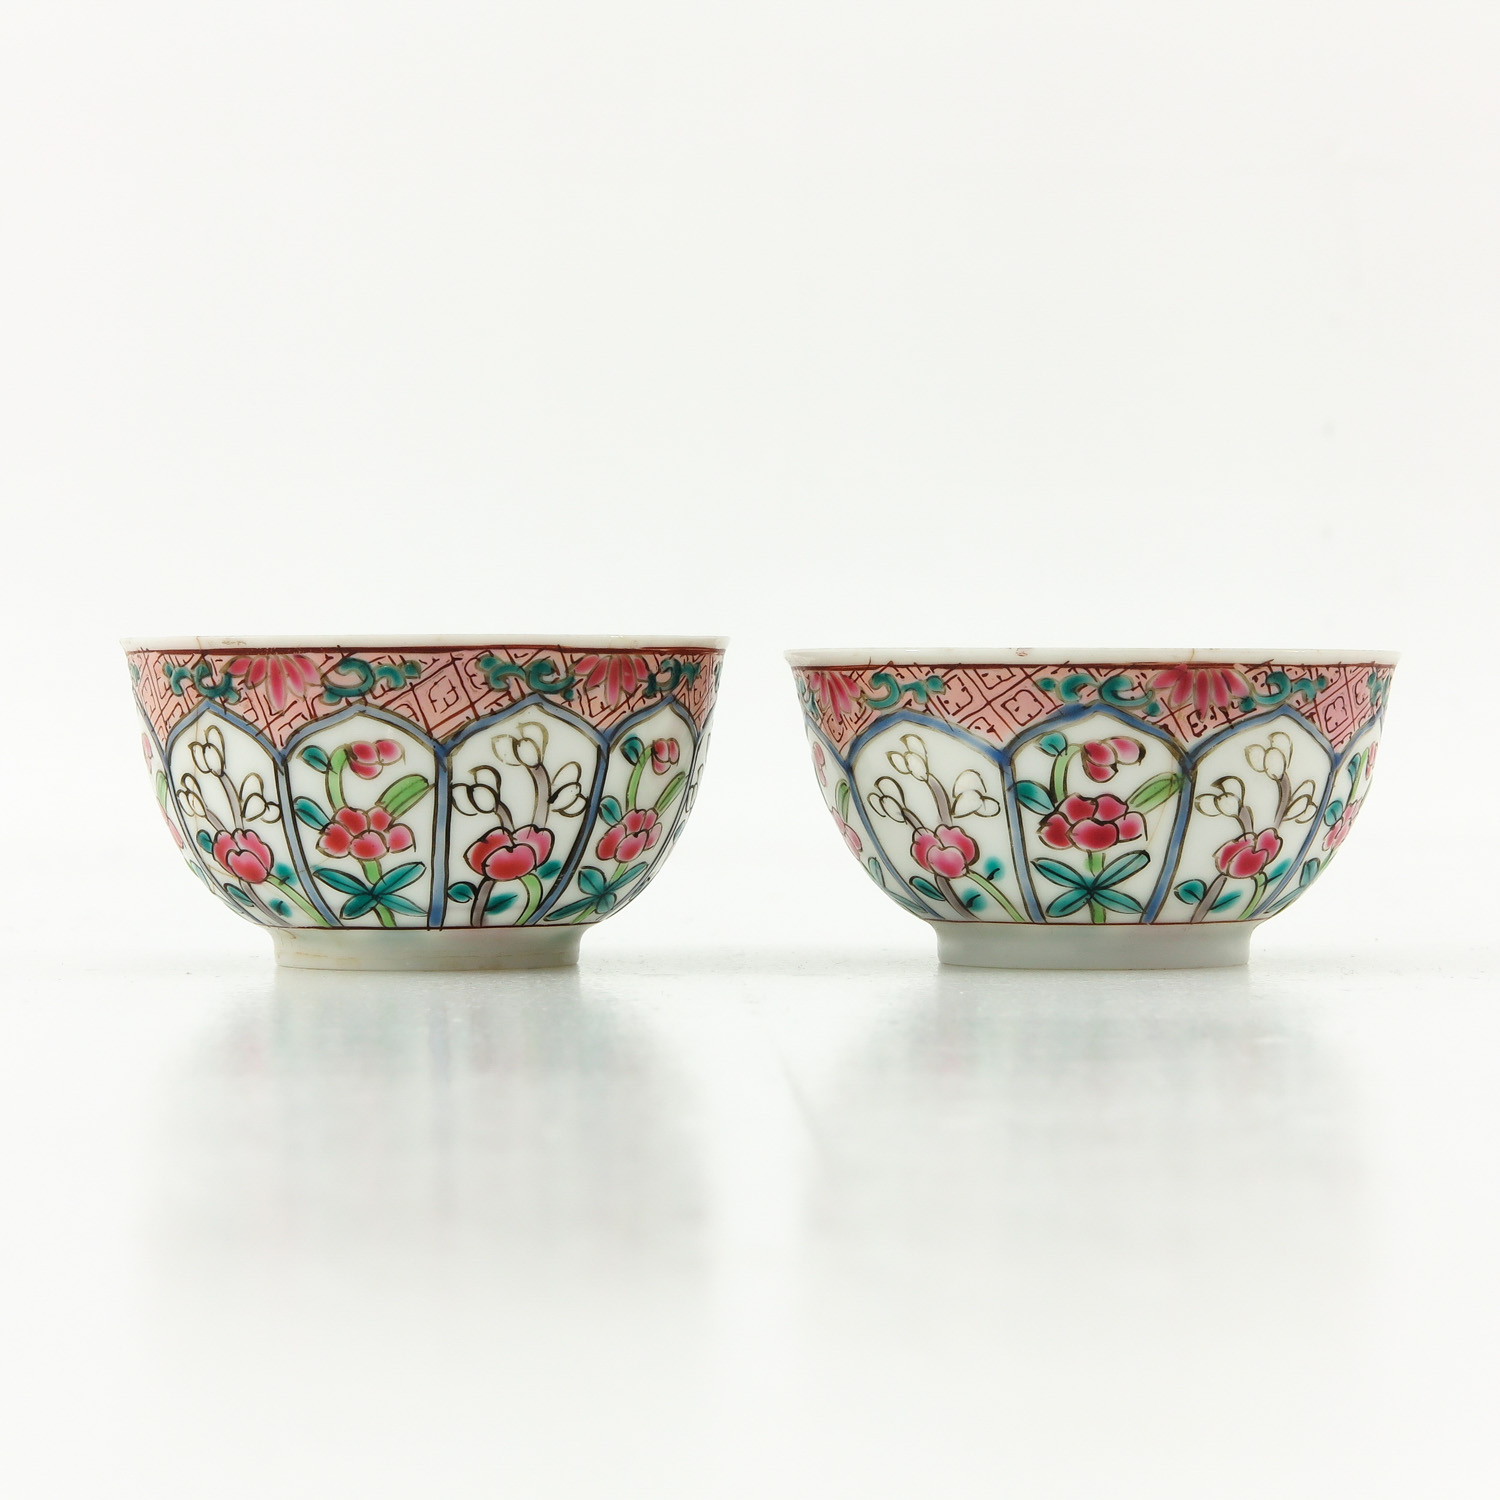 A Collection of Cups and Saucers - Image 2 of 10